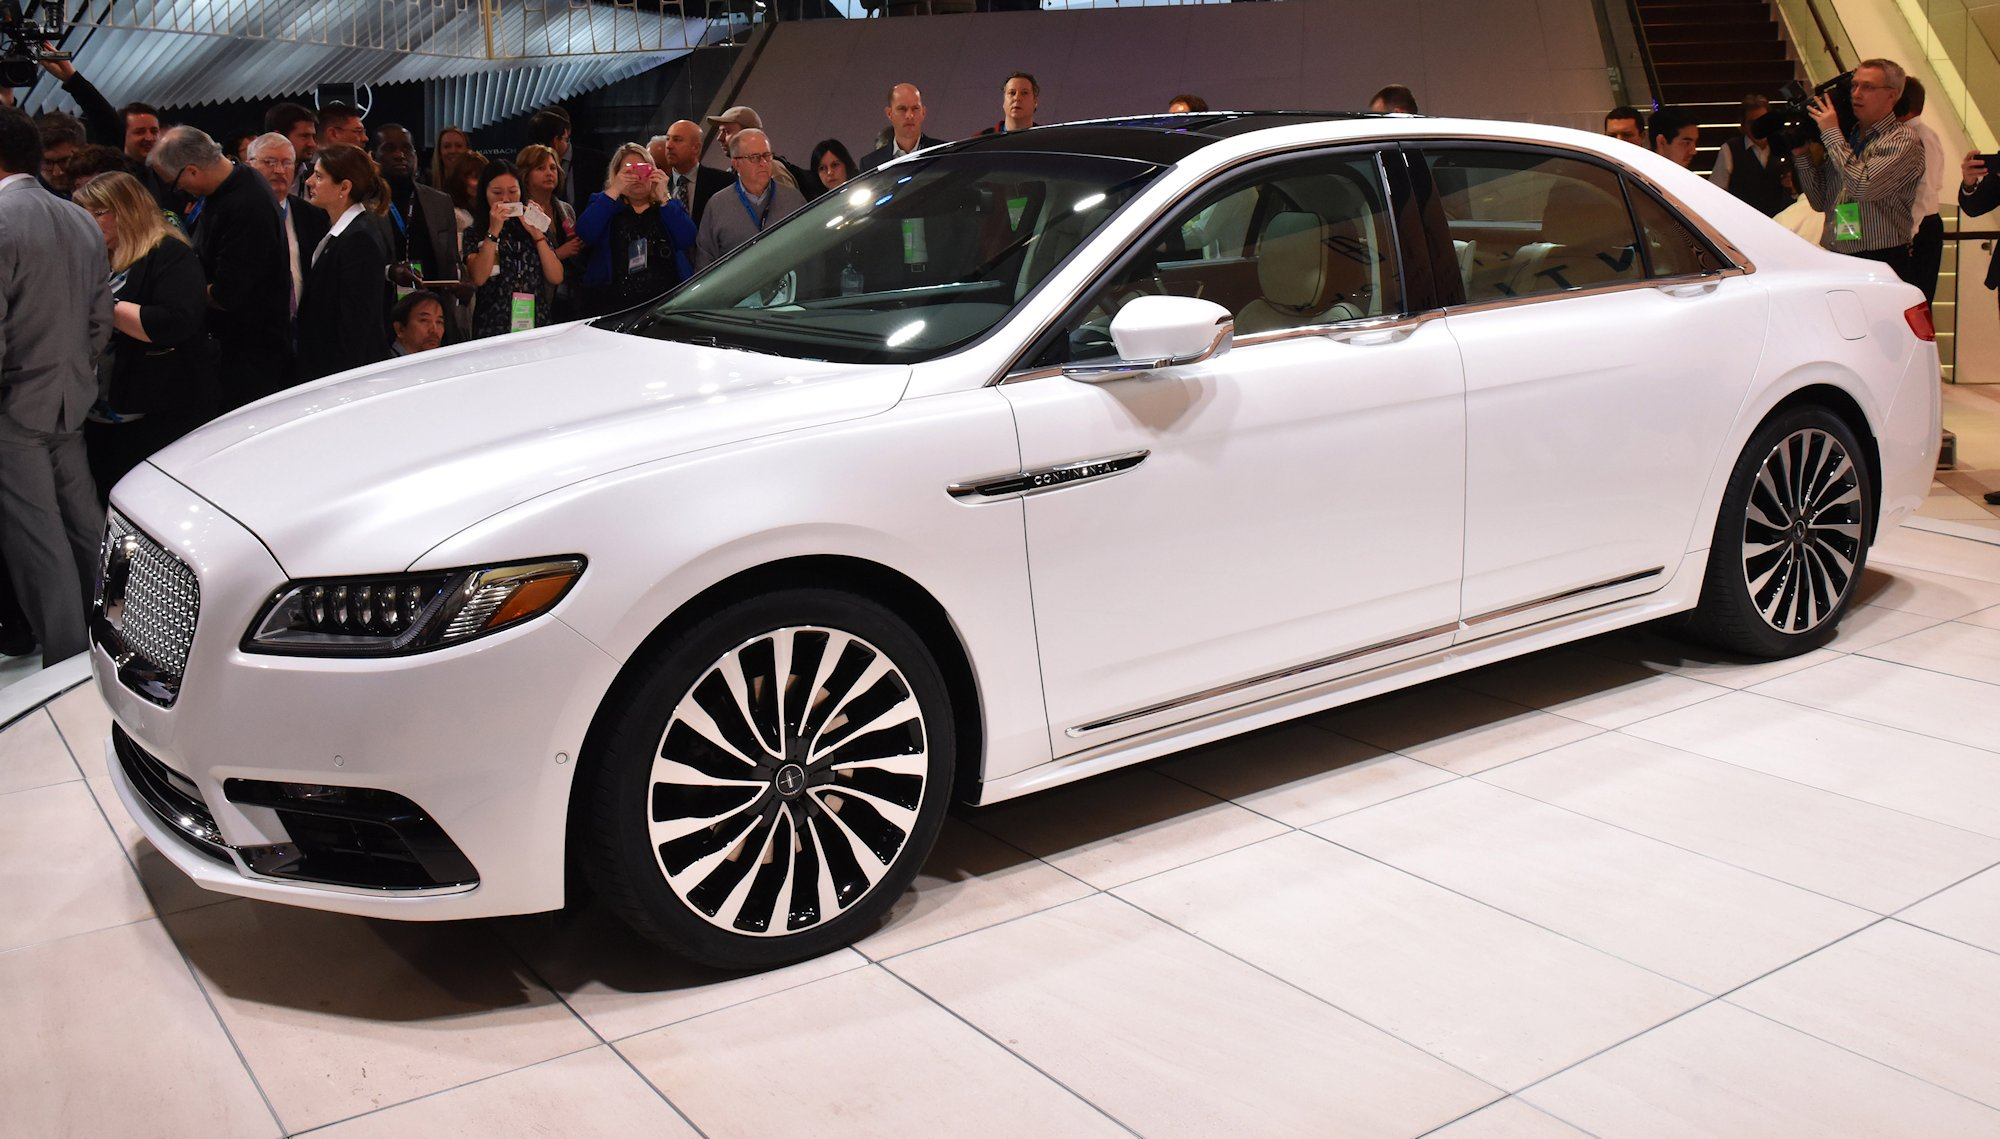 "Detroit, January 12, 2016 --€"" Journalists from around the world with the all-new Lincoln Continental, revealed today at the North American International Auto Show. Beginning this fall, Continental offers first-class travel for clients in America and China, bringing warm, human touches and a contemporary design."